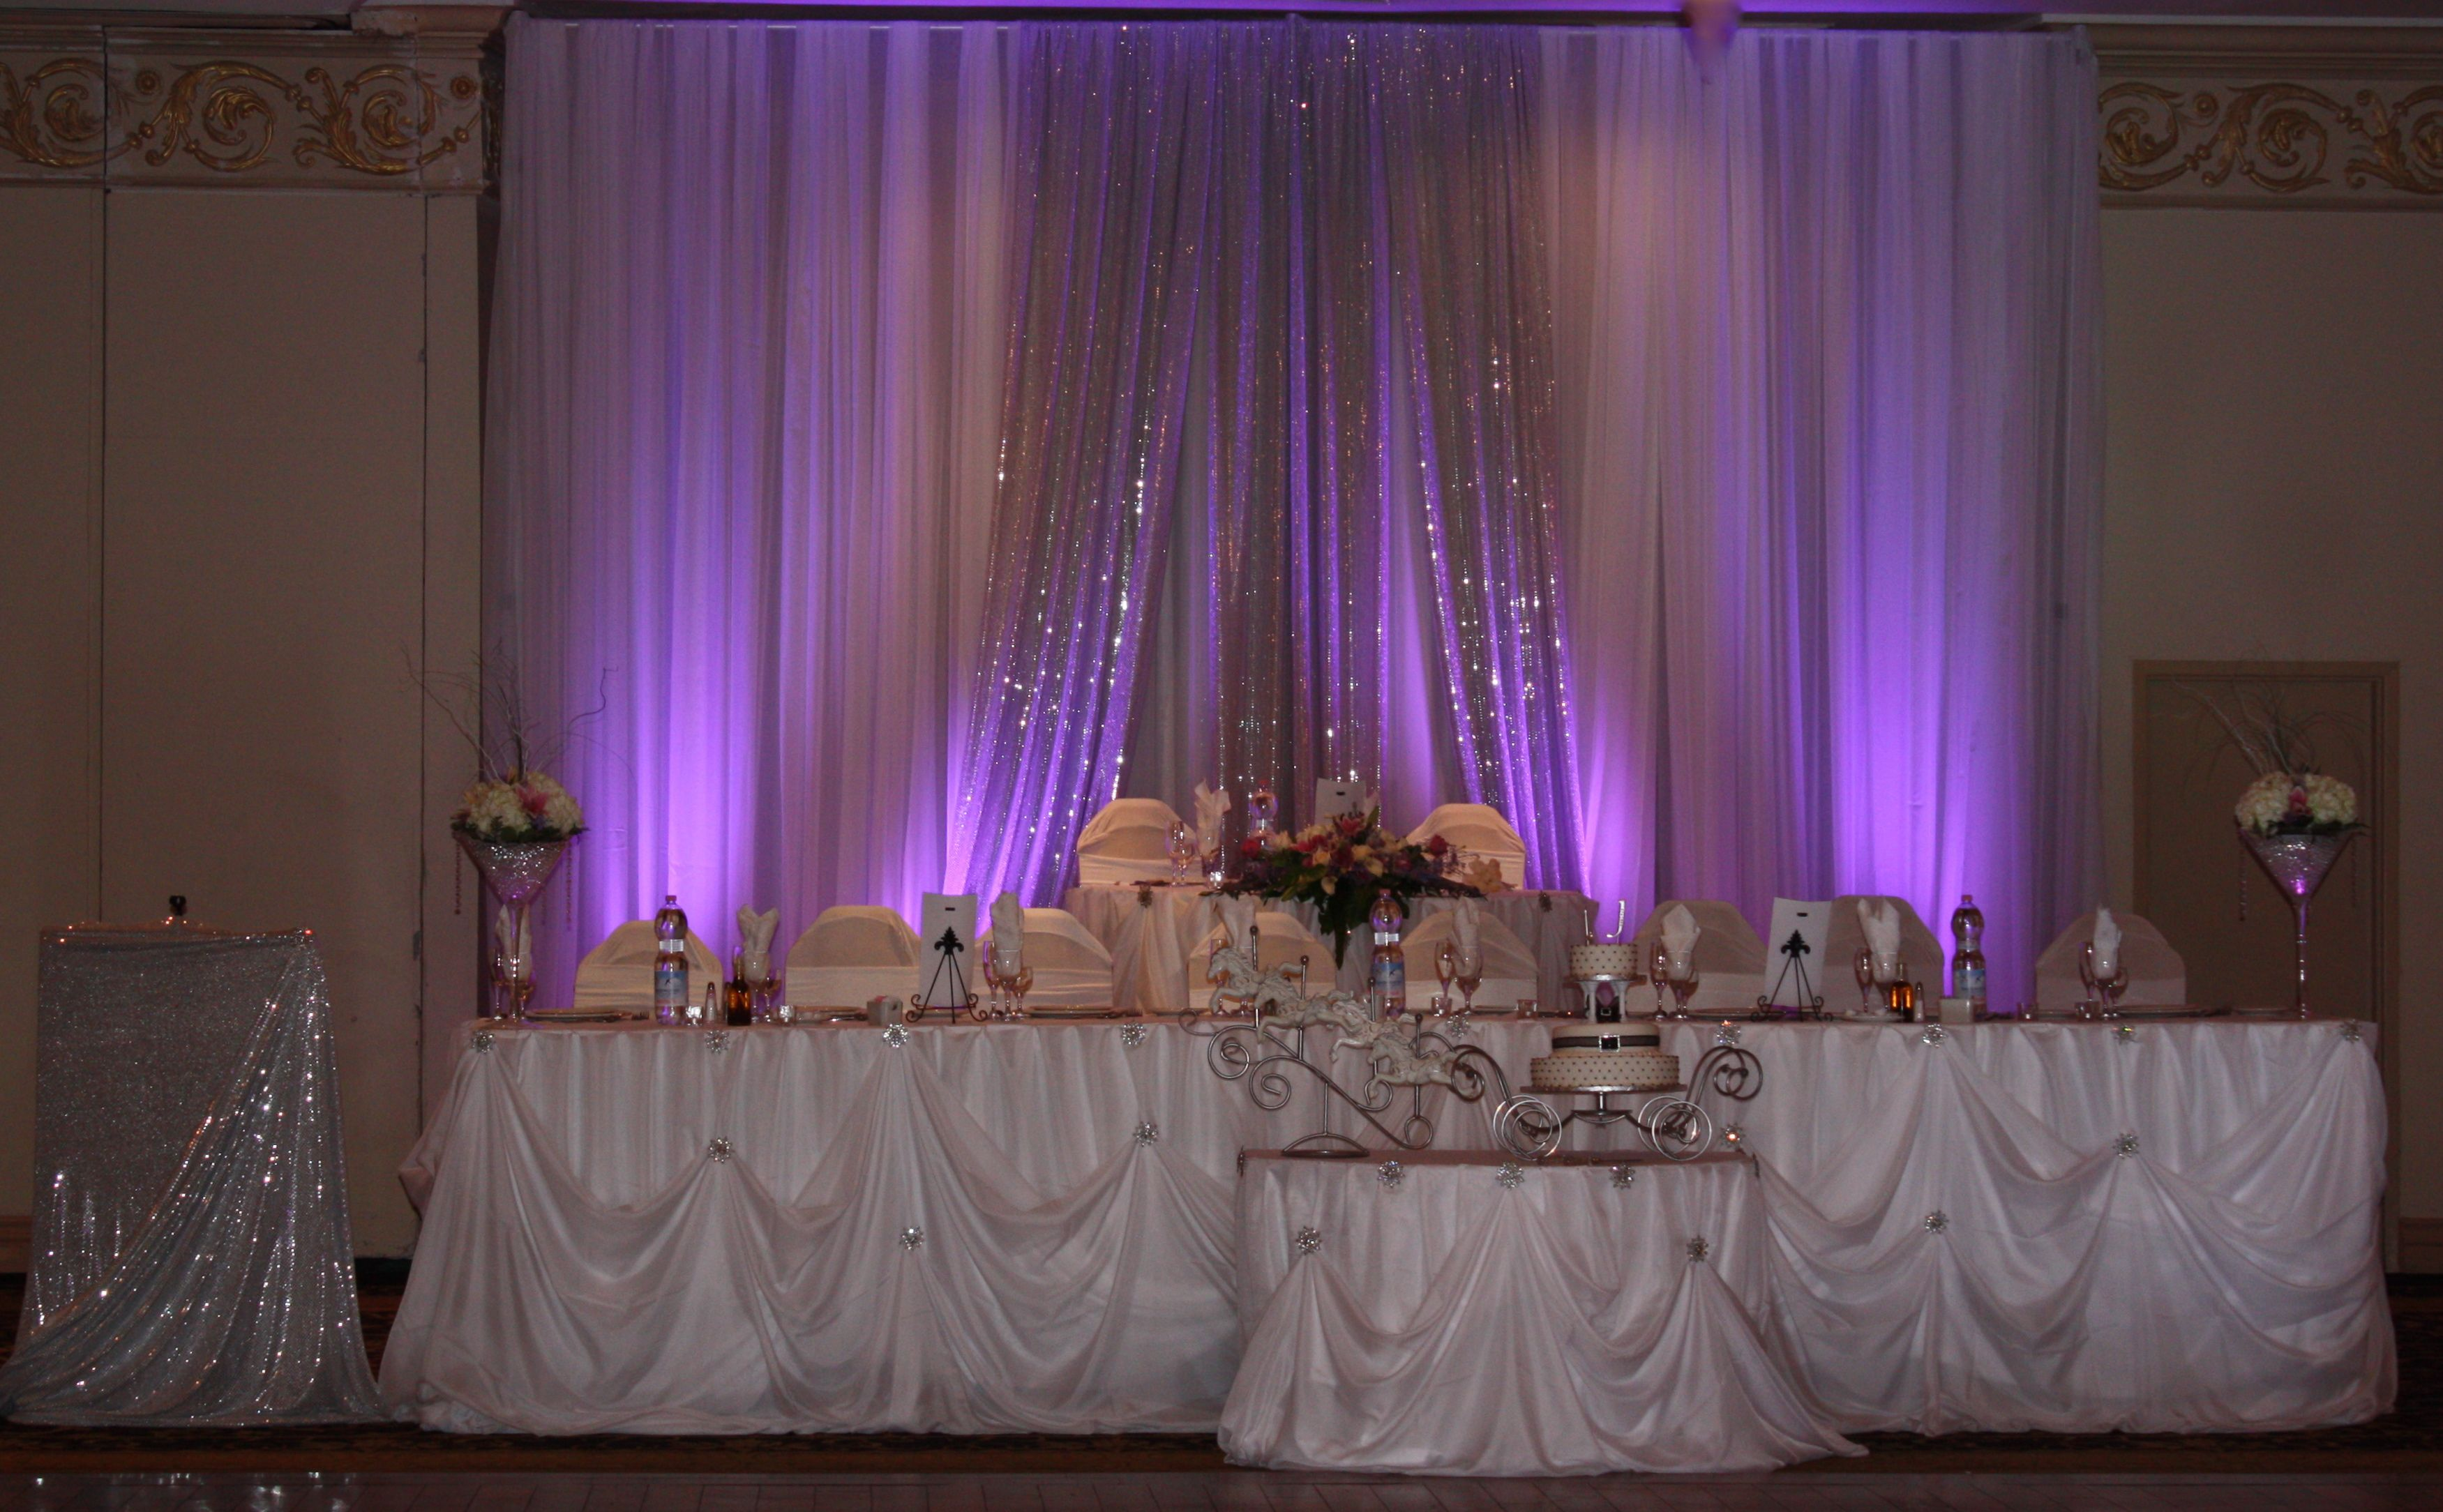 wedding stage decoration pics%0A Could be set up behind cake or gift table rather than wedding